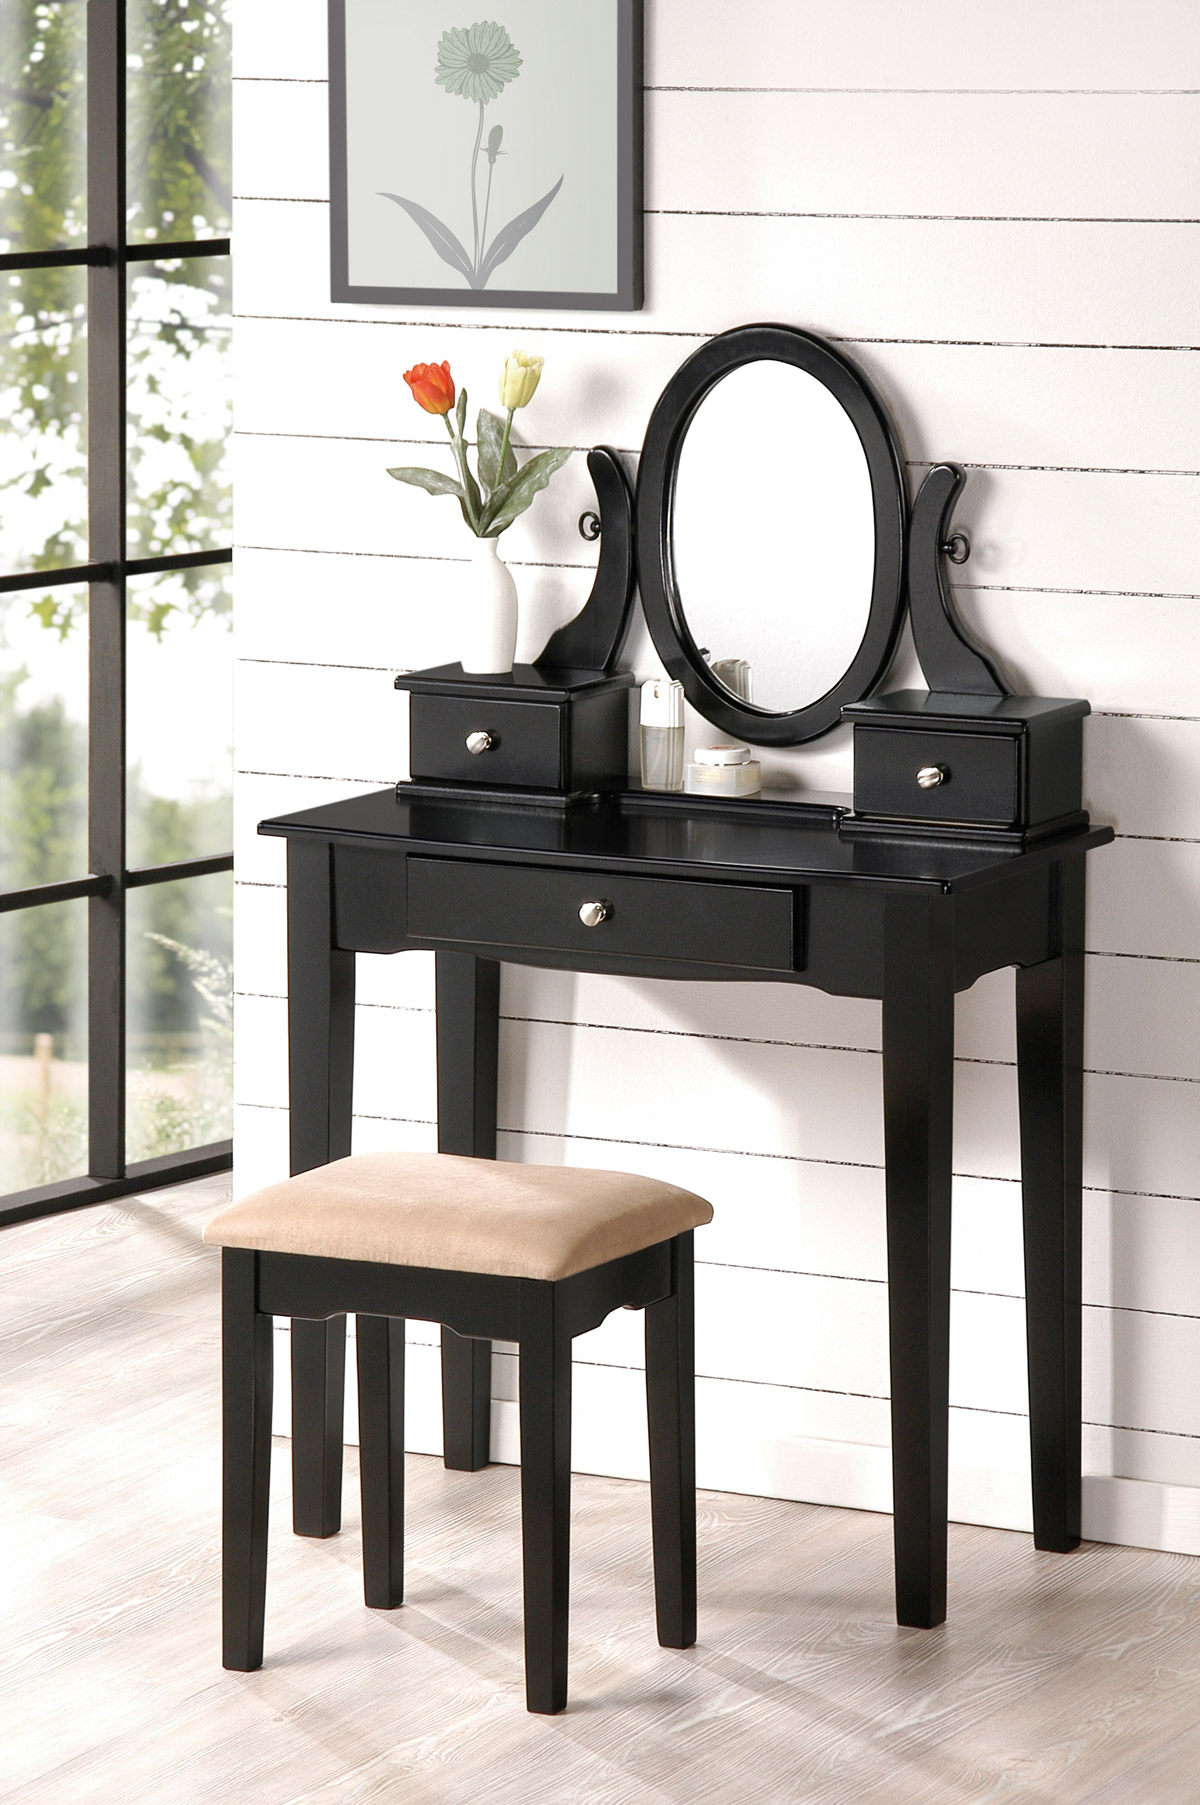 Charming Black Hayworth Vanity With Mirror Plus Matching Stool For Inspiring Furniture Ideas